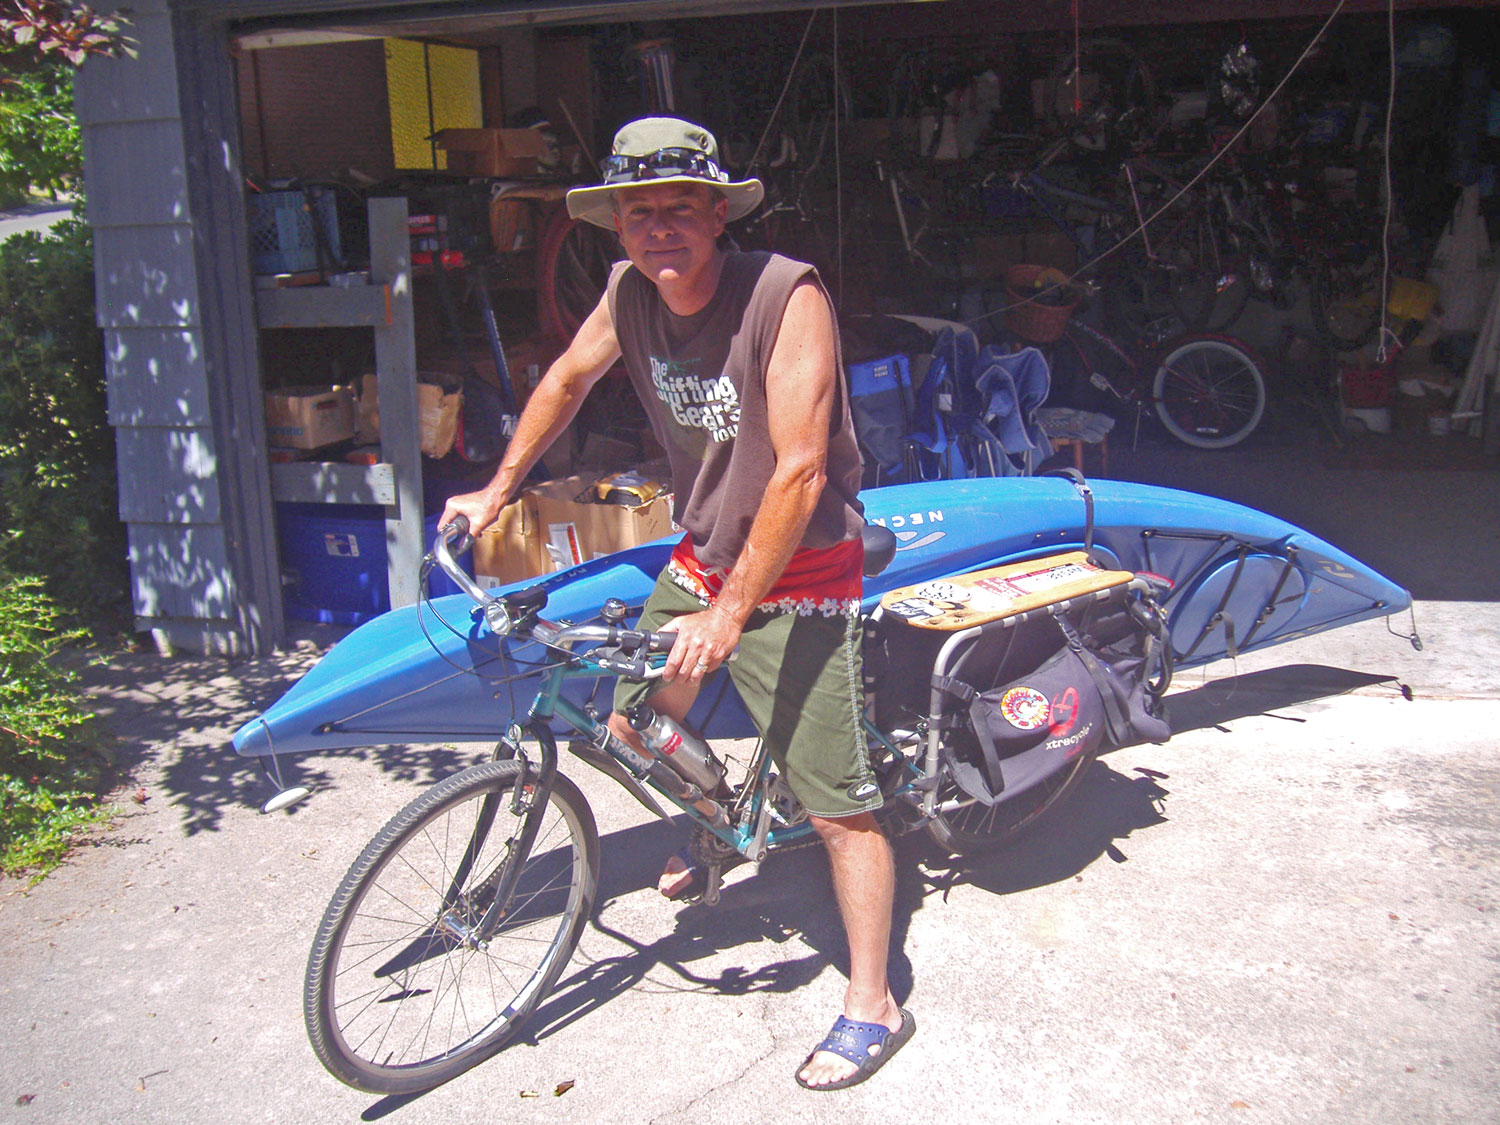 Trucks are Sissy!  Blue Heron Bikes founder Rob Allen preps for a kayak adventure on the American River with his Xtracycle FreeRadical converted cargo bike.